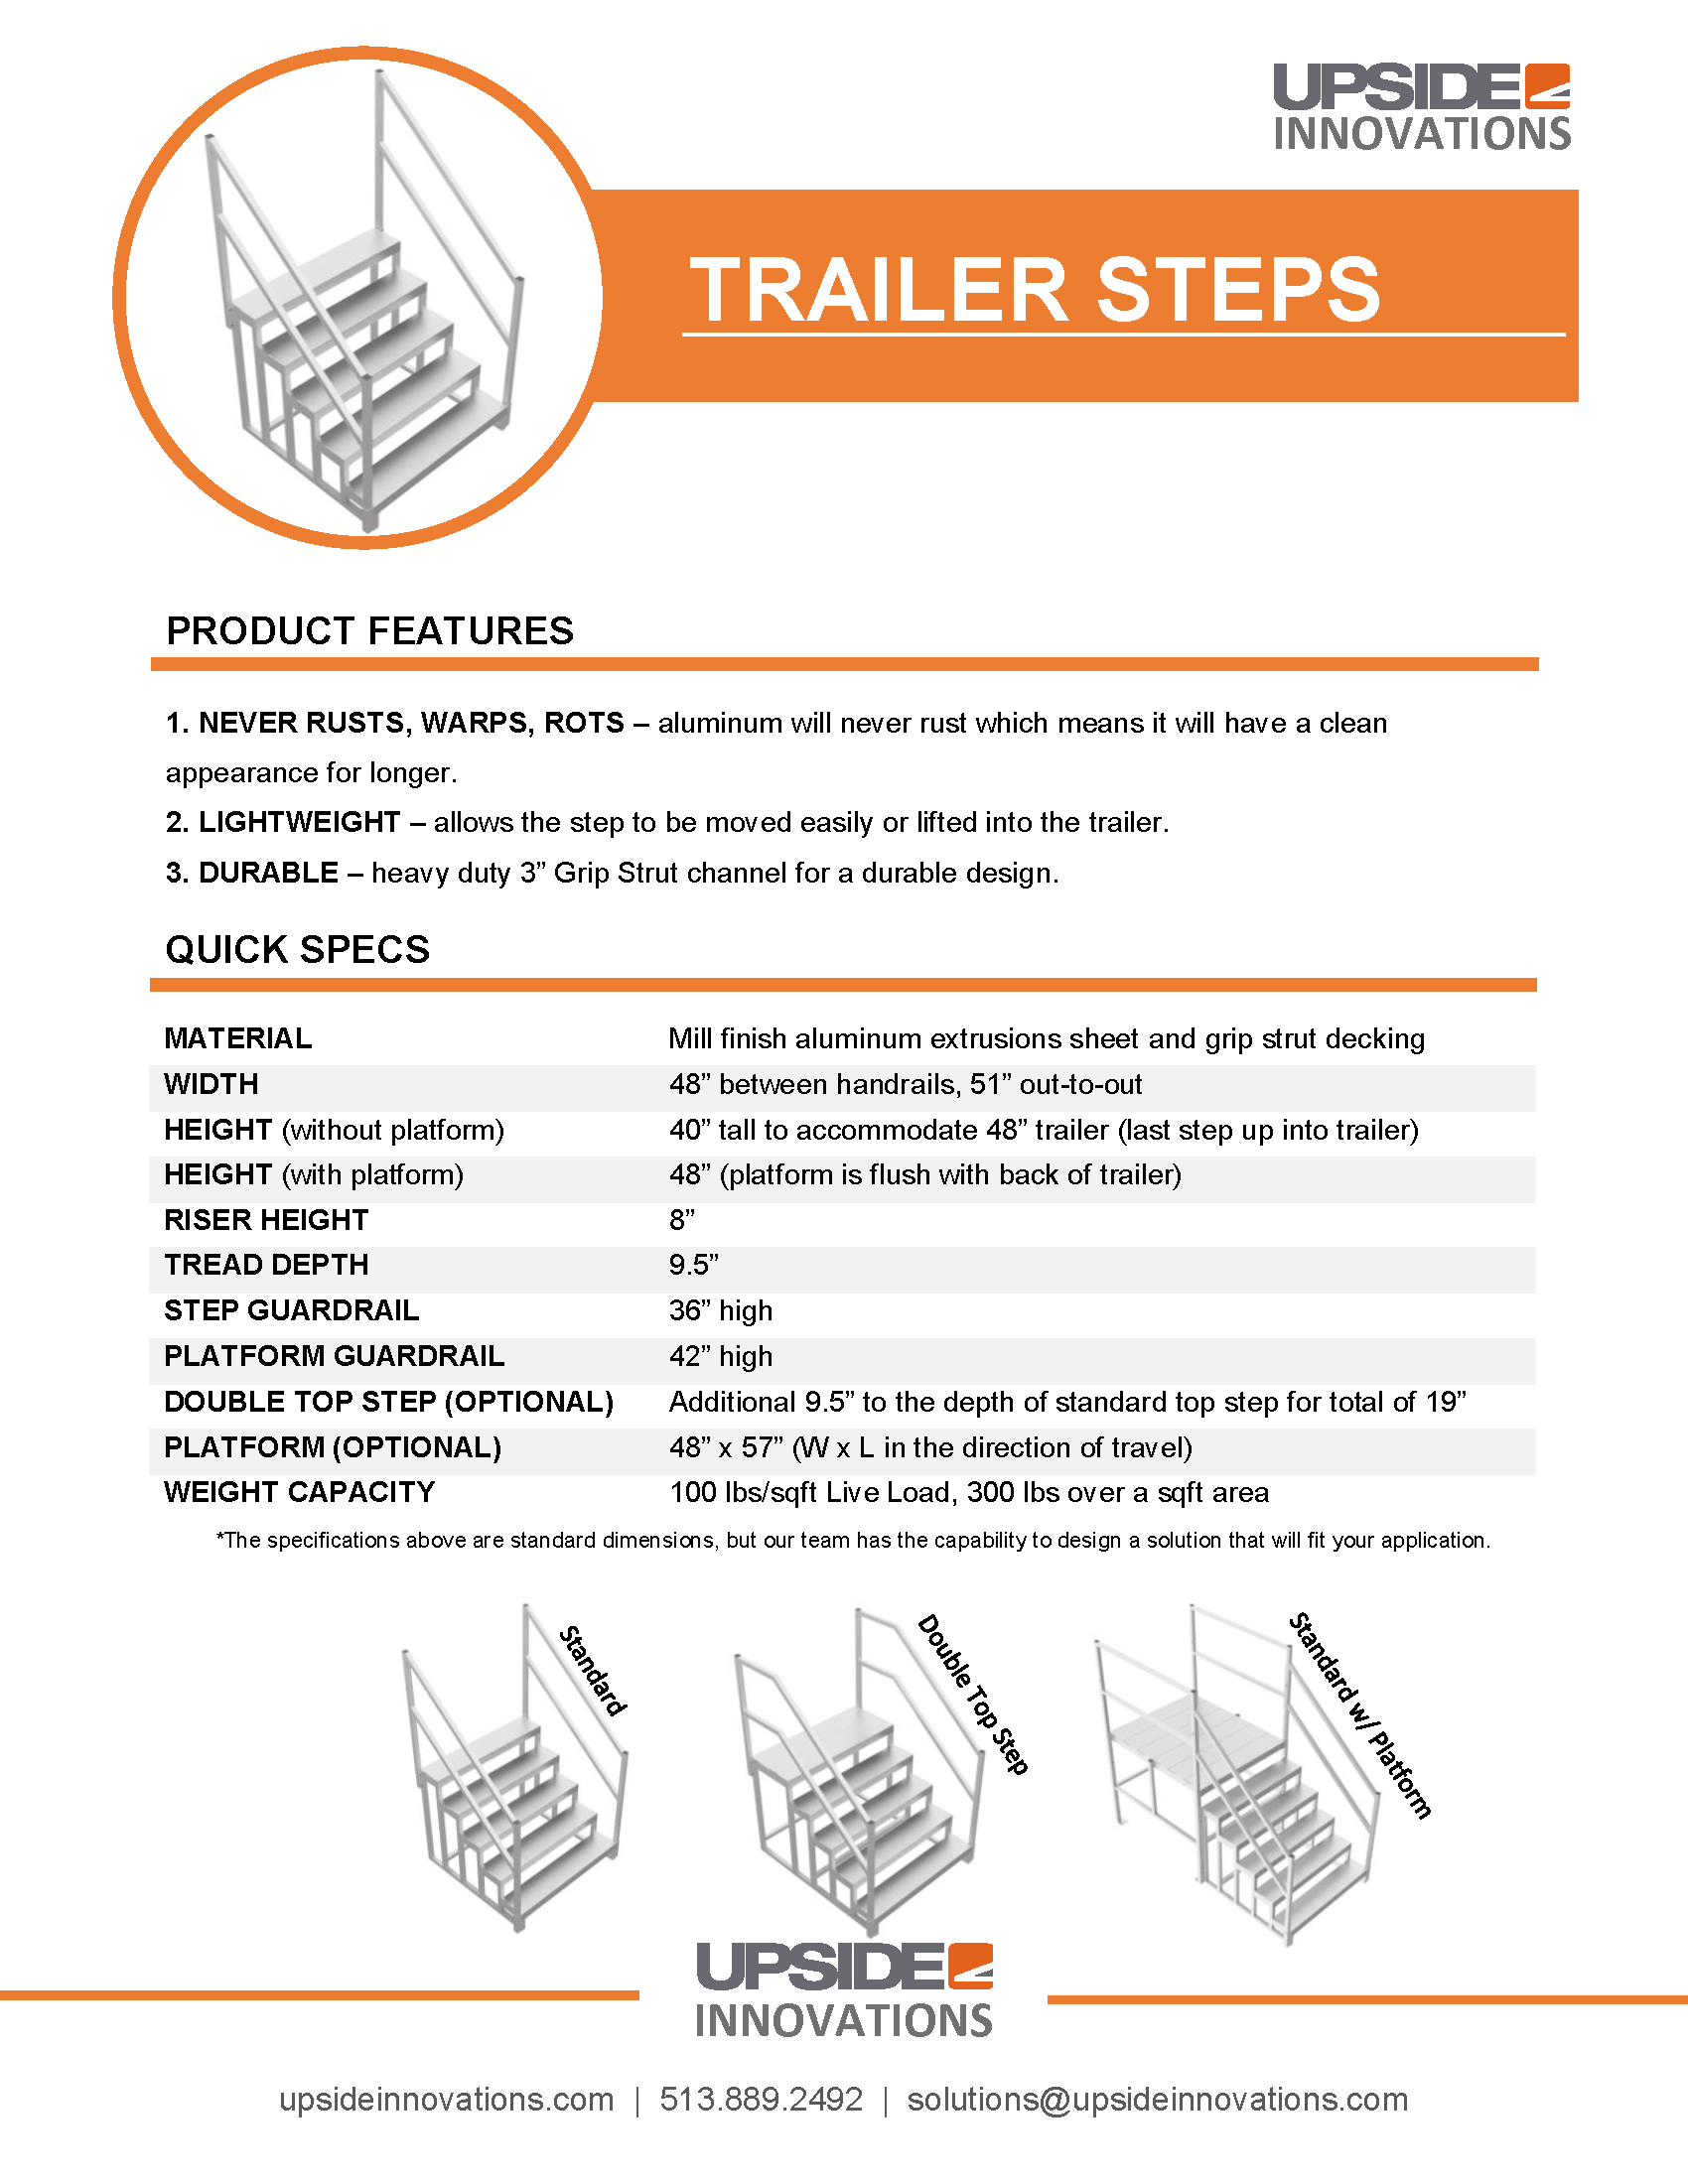 Trailer step specifications